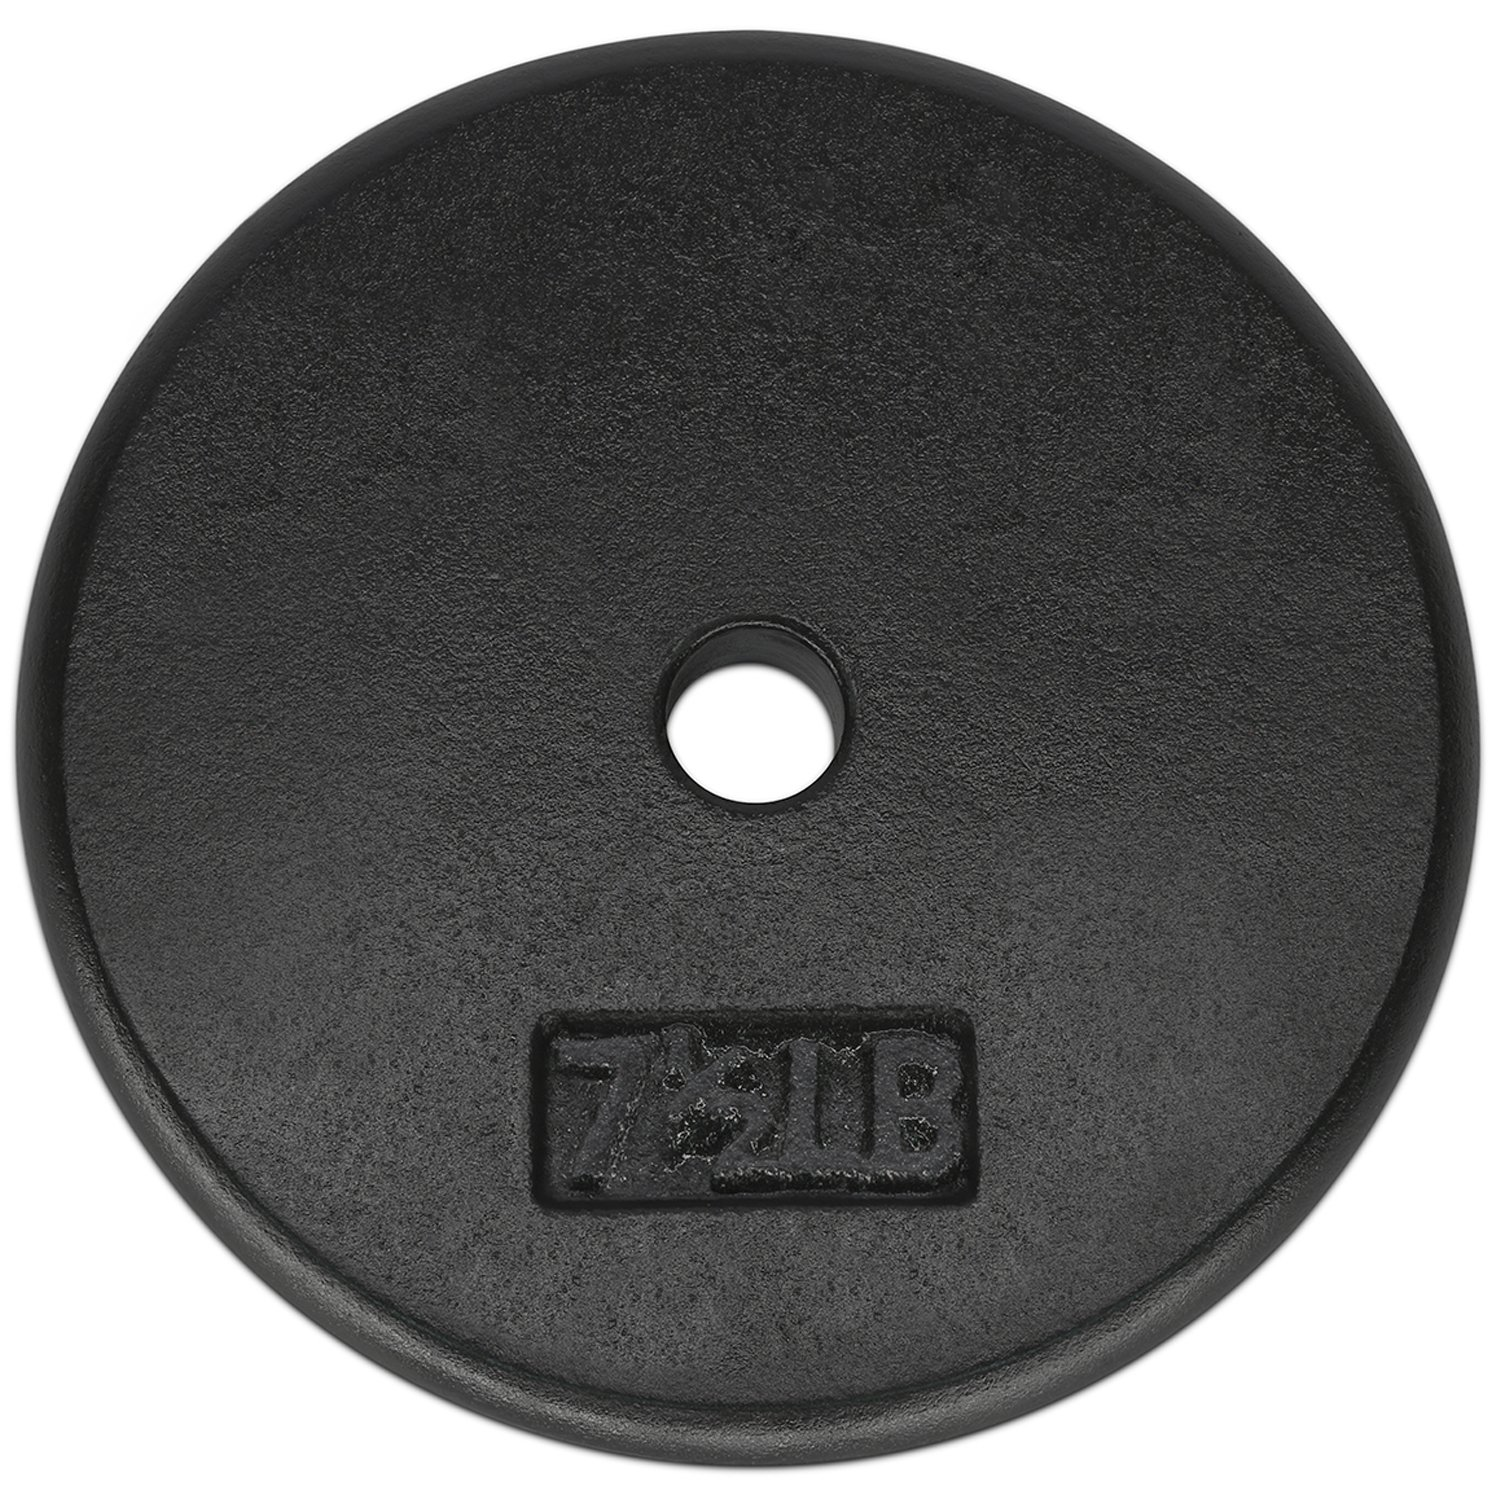 Yes4All 1-inch Cast Iron Weight Plates for Dumbbells – Standard Weight Disc Plates (7.5 lbs, Single)